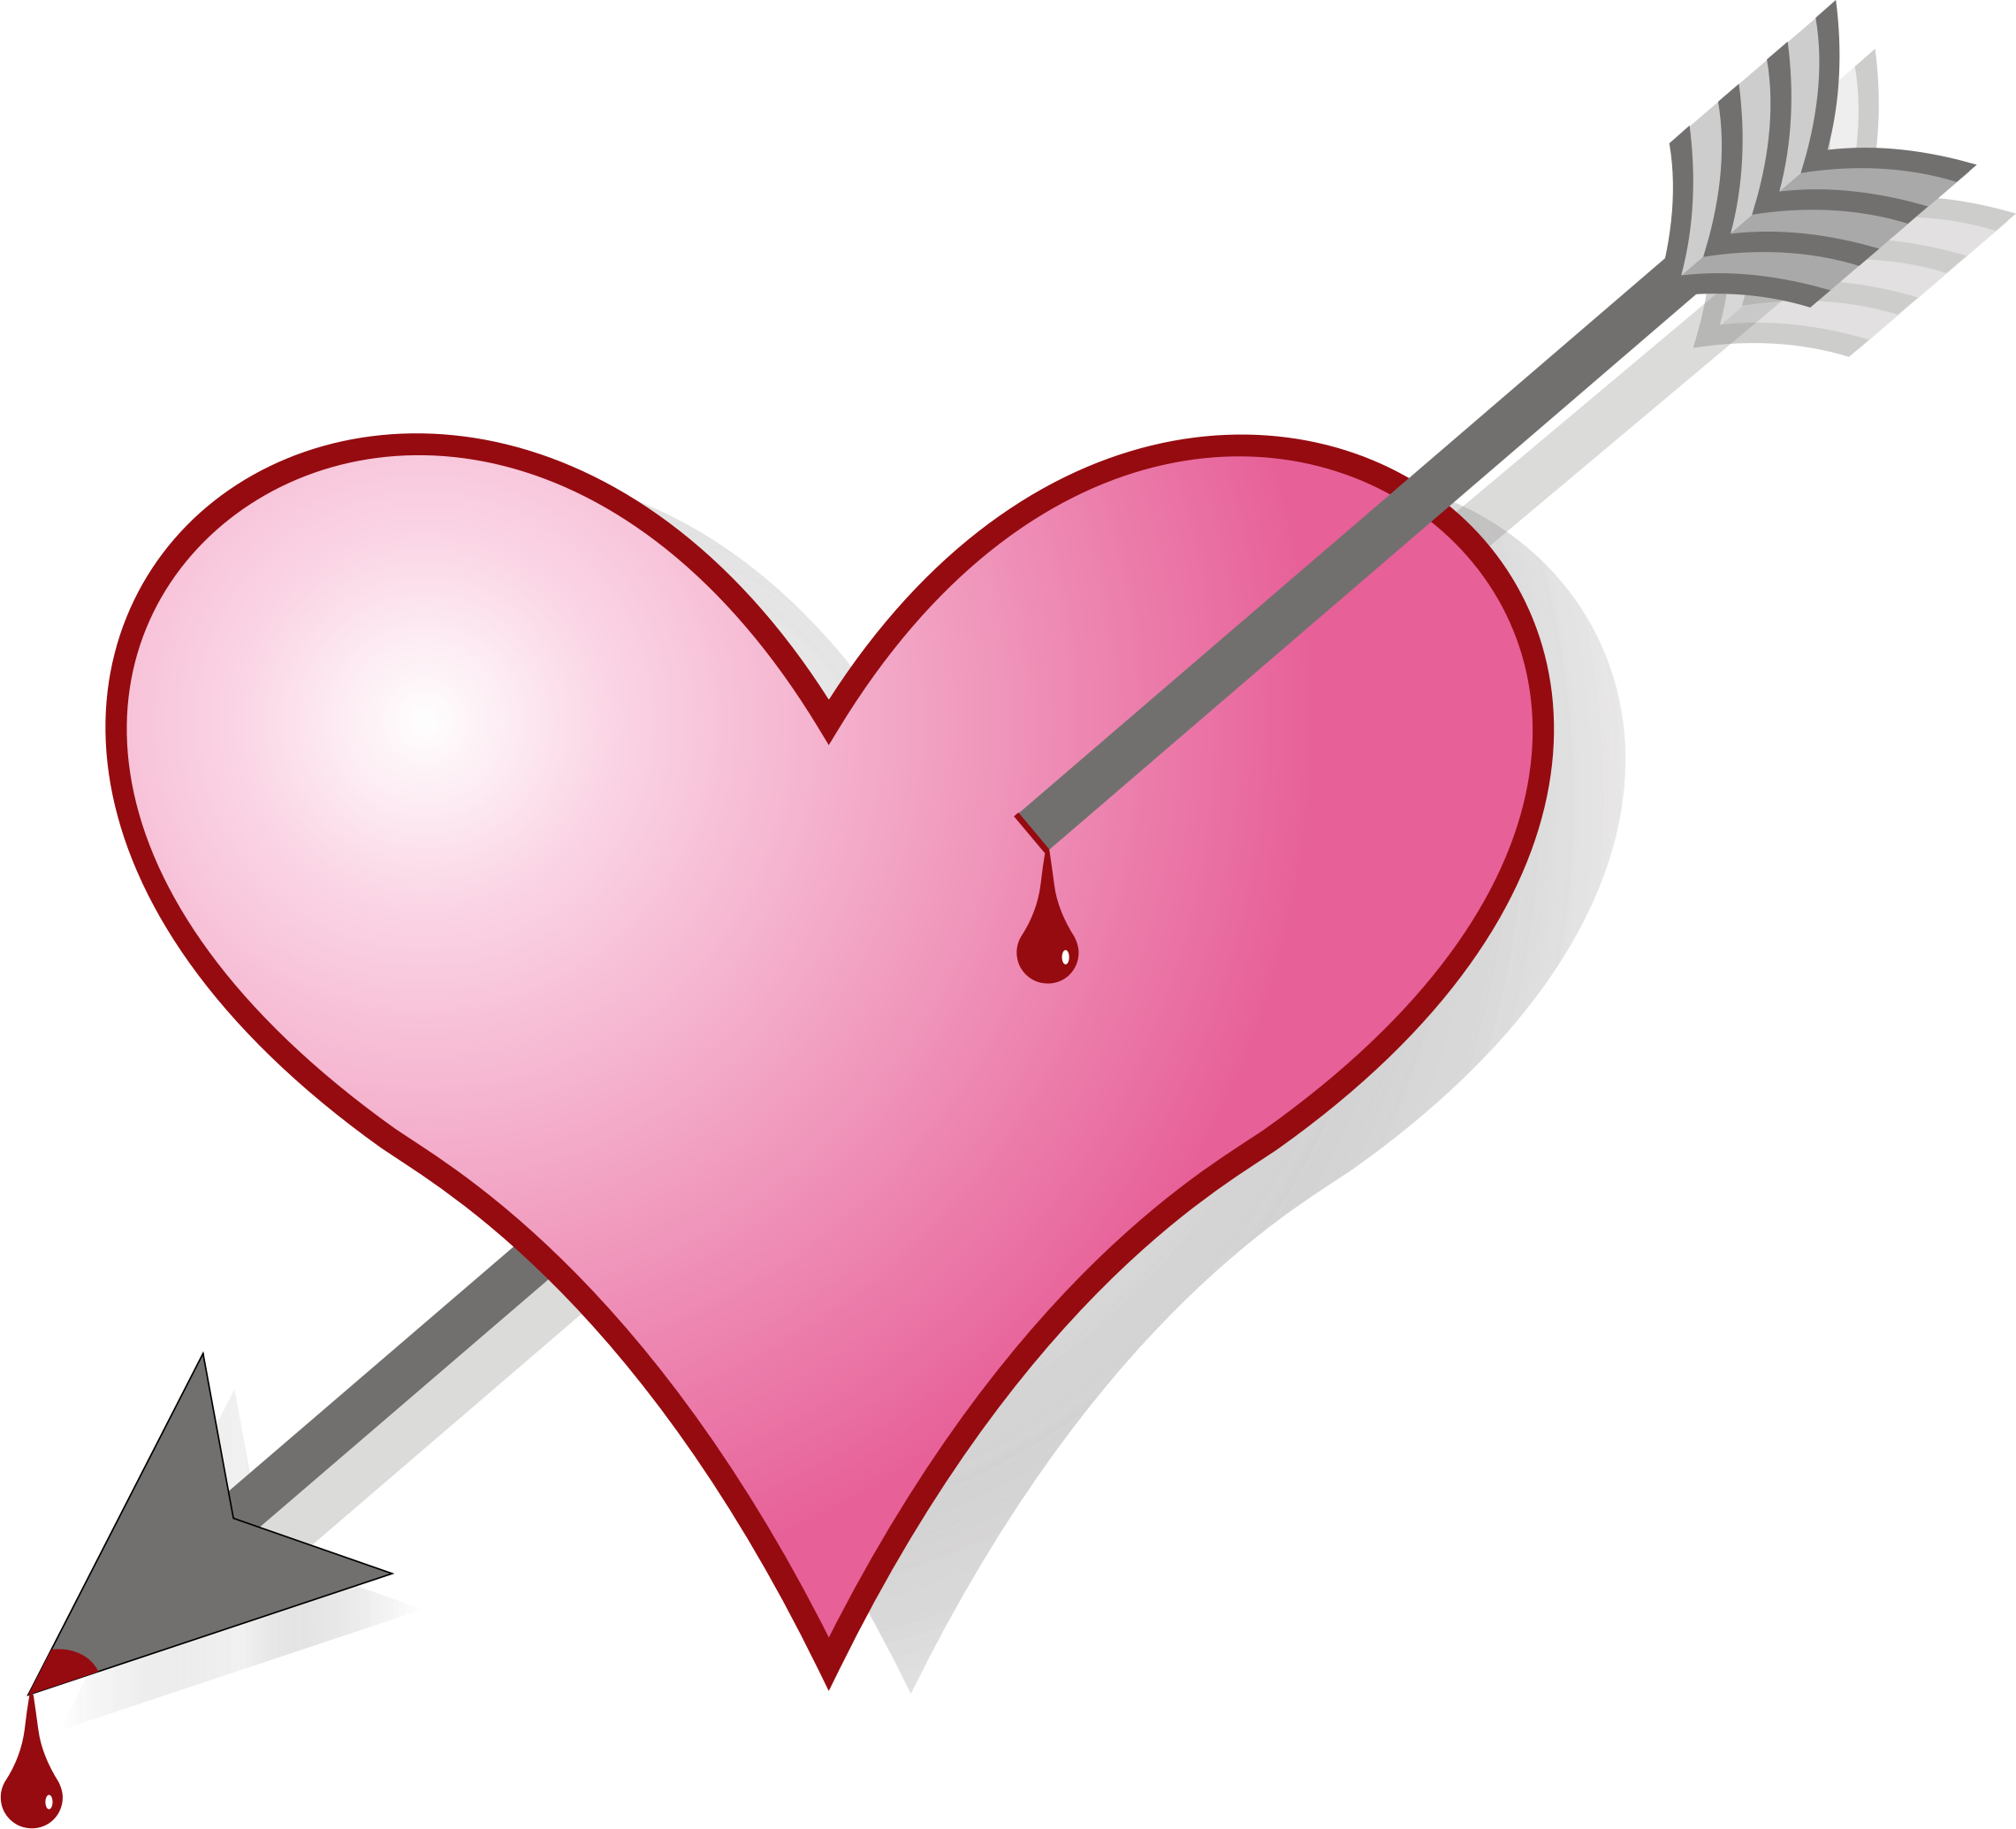 image freeuse download Arrow and heart clipart. Big image png